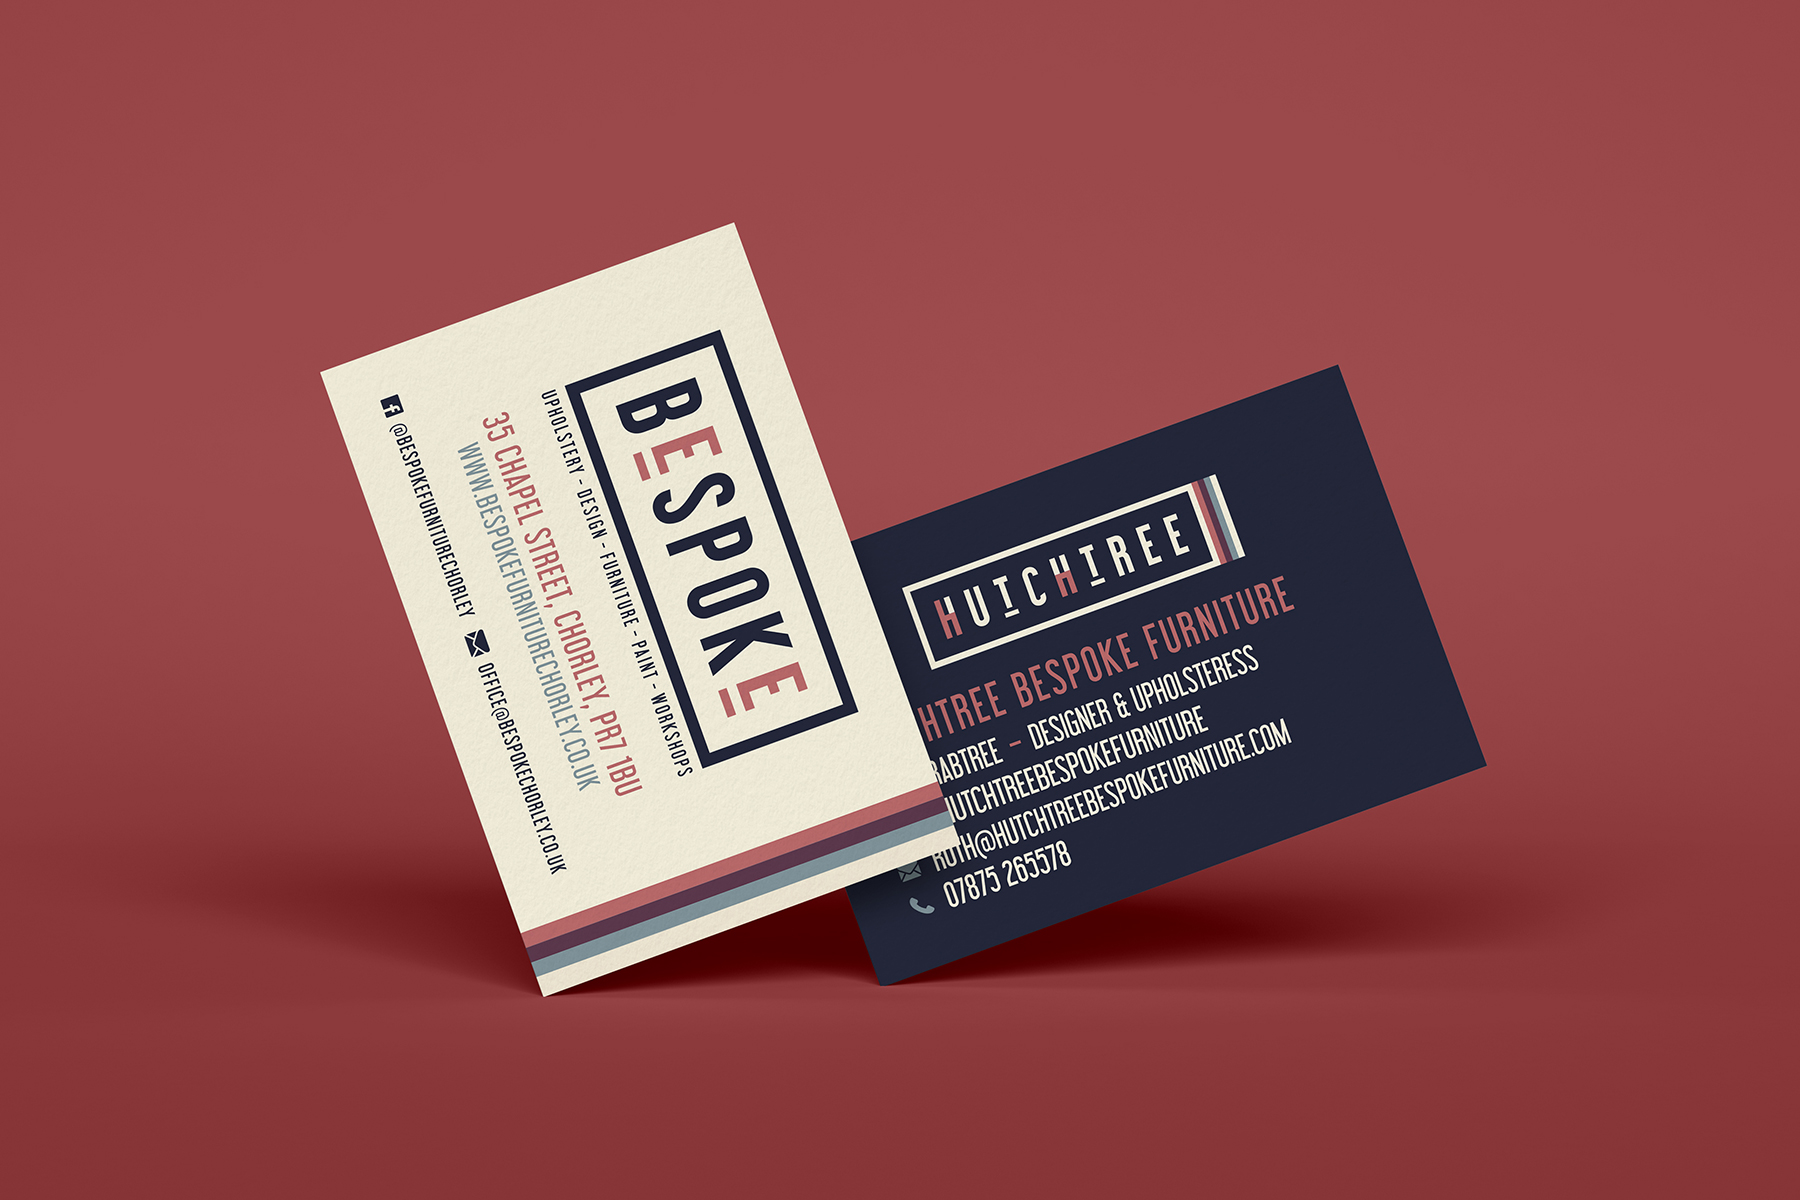 bespoke - hutchtree business cards